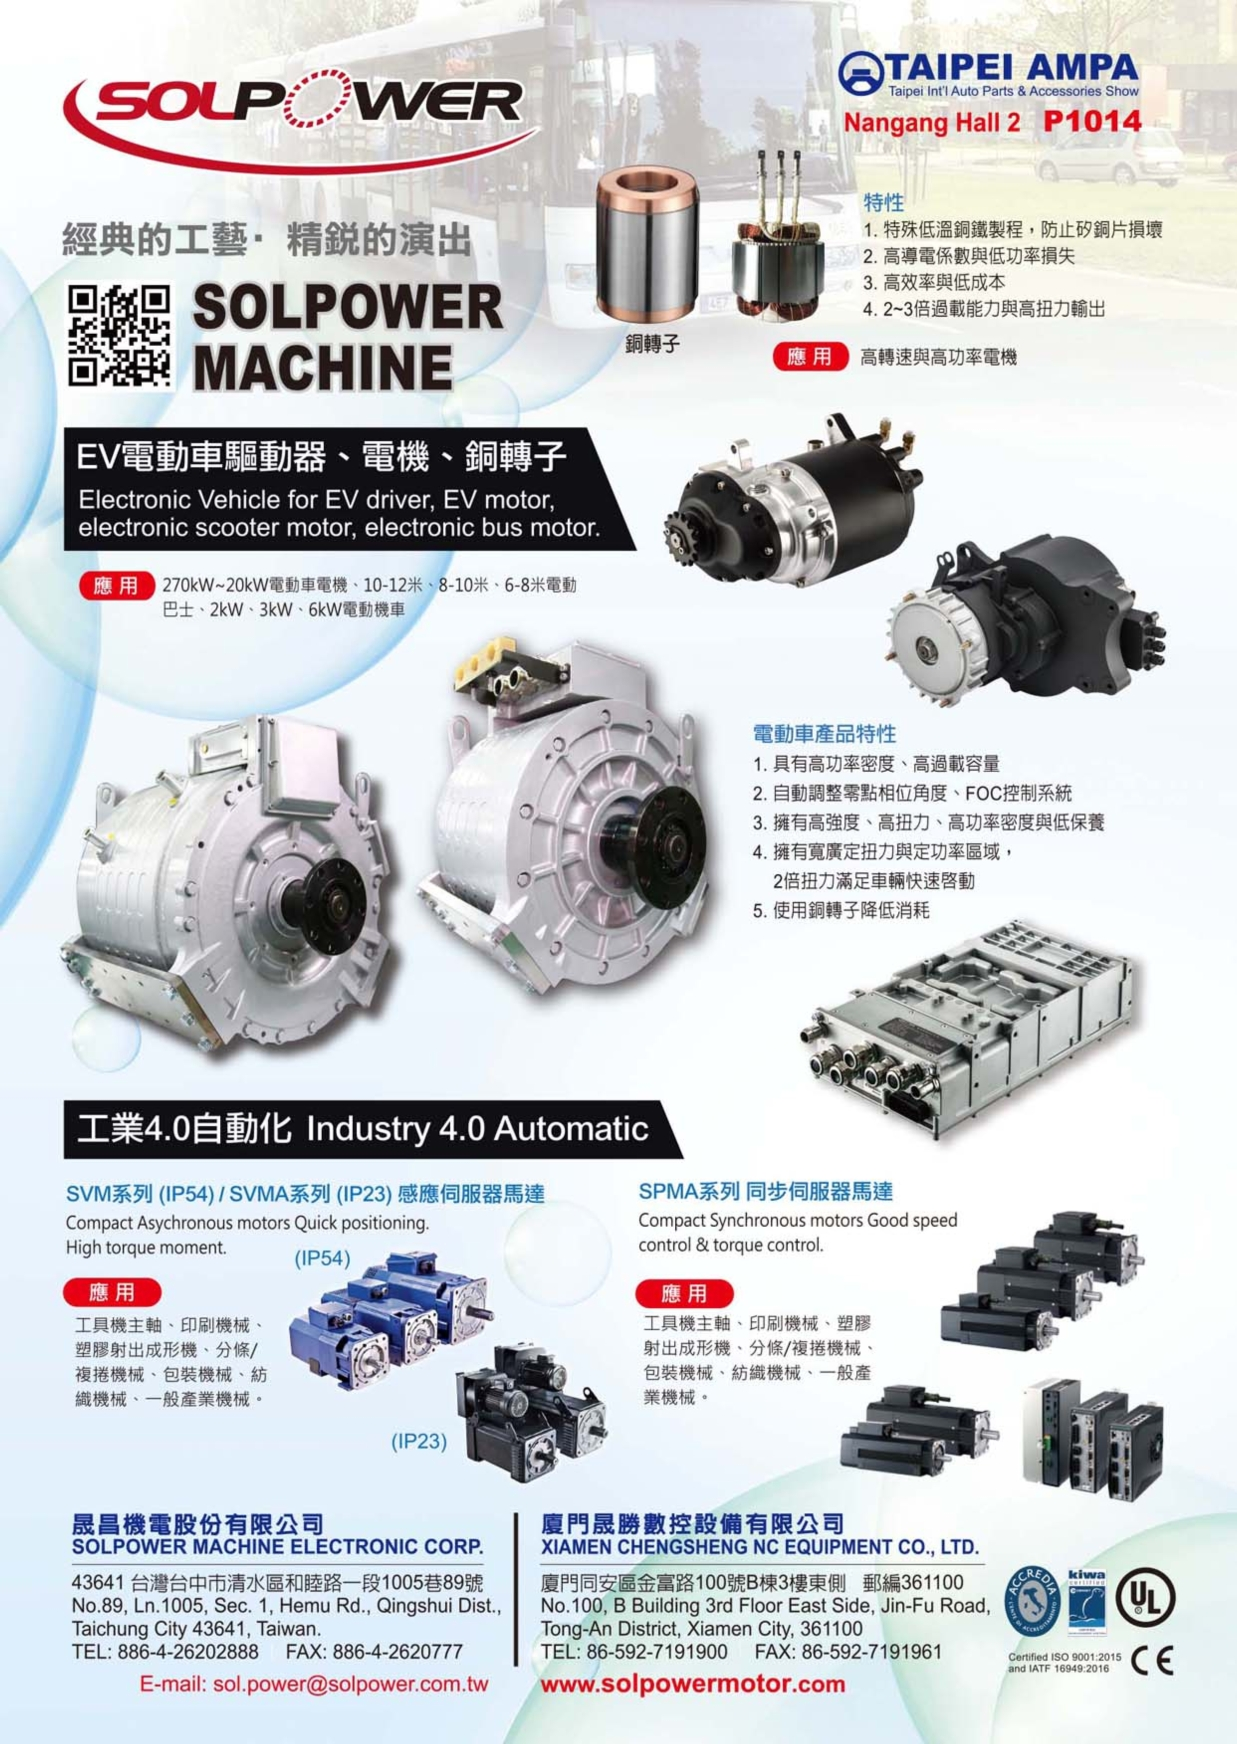 Taipei Int'l Auto Parts & Accessories Show (AMPA) SOLPOWER MACHINE ELECTRONIC CORP.